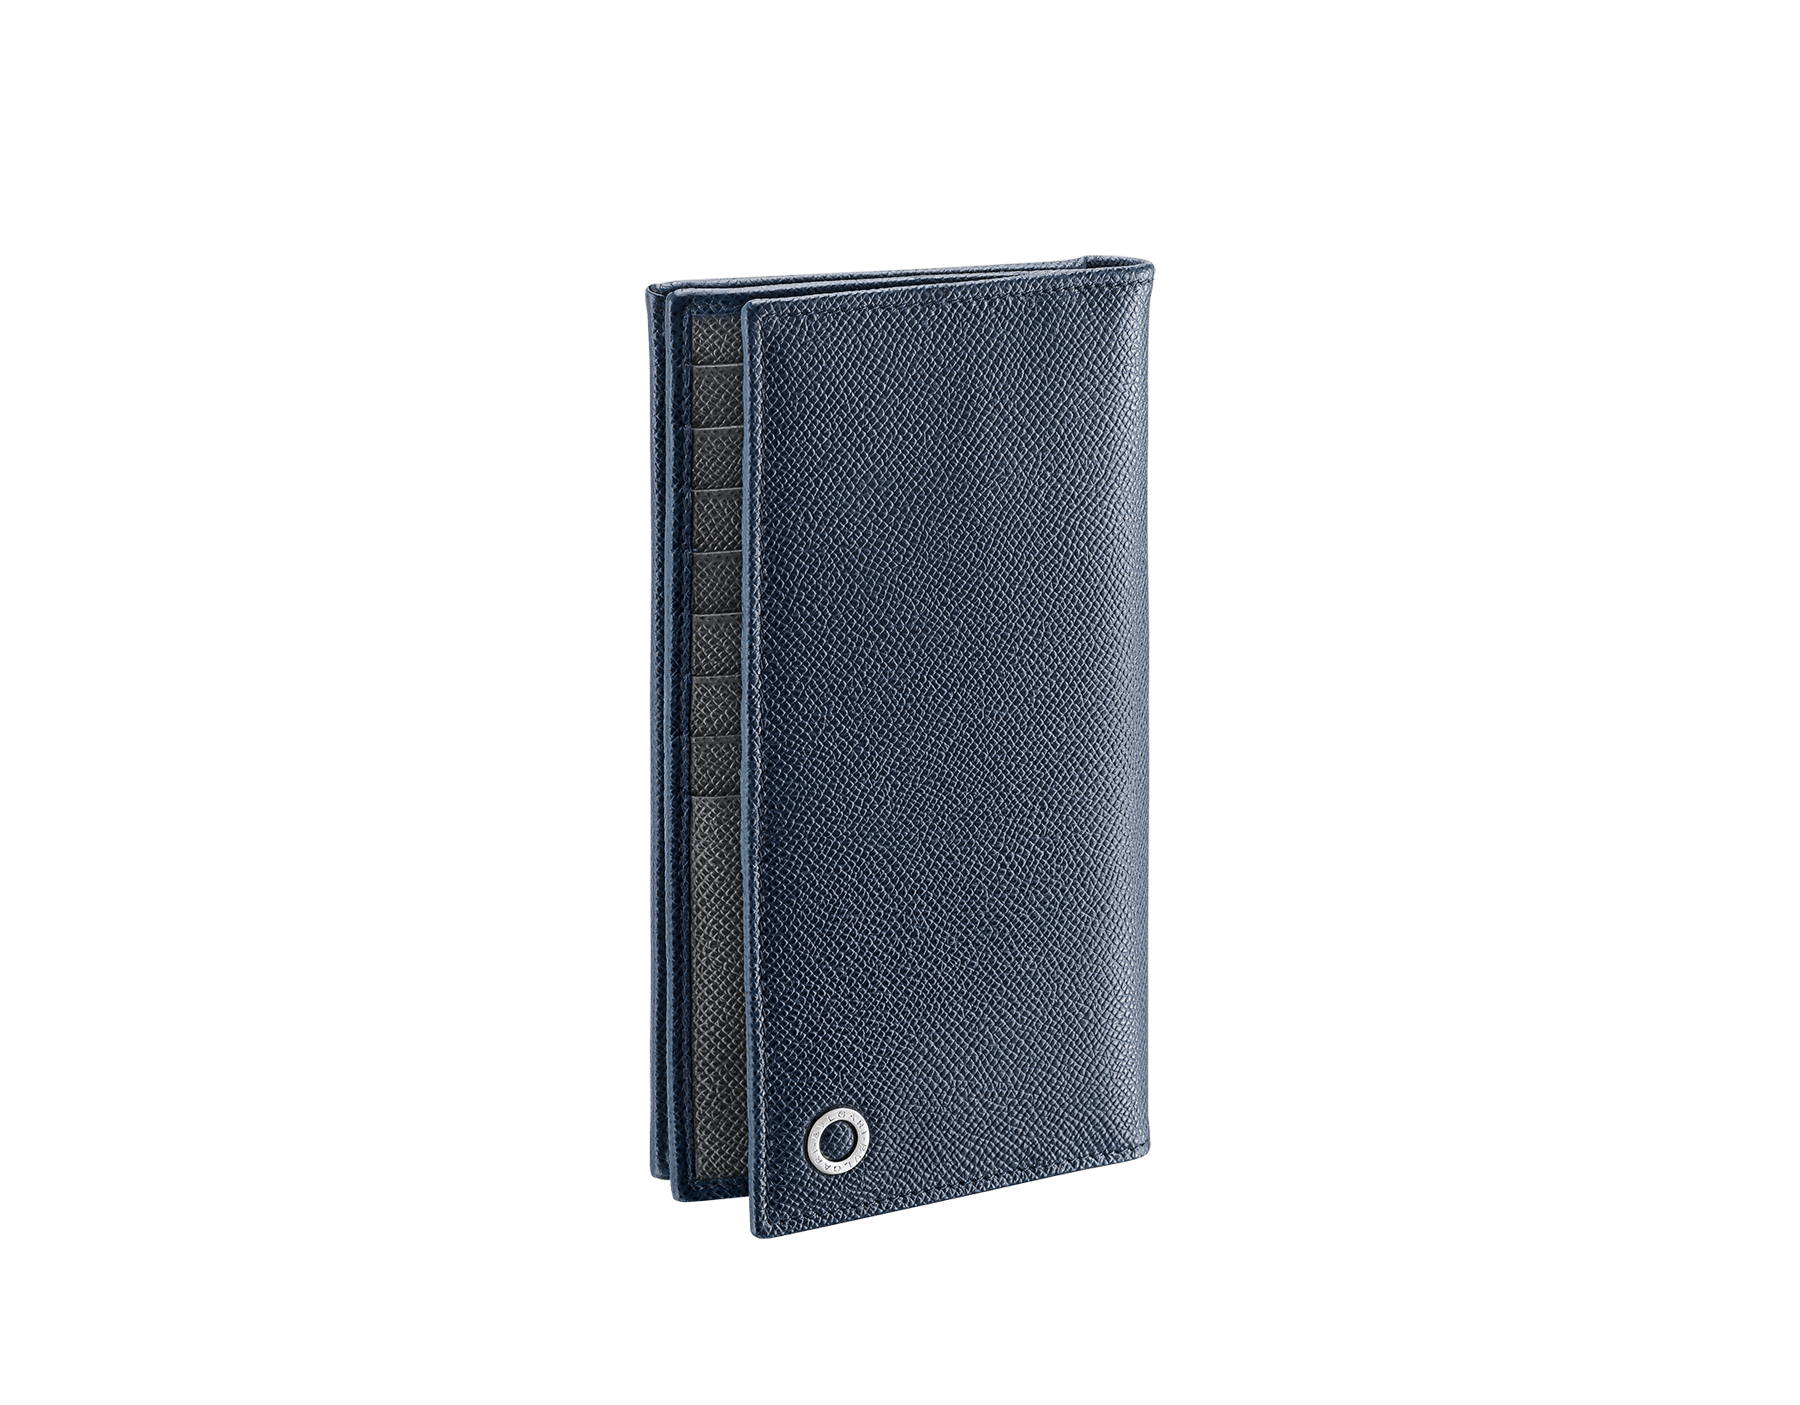 BVLGARI BVLGARI men's wallet in denim sapphire and charcoal diamond grain calf leather and blue slate nappa lining. Iconic logo décor in palladium plated brass. 289104 image 1